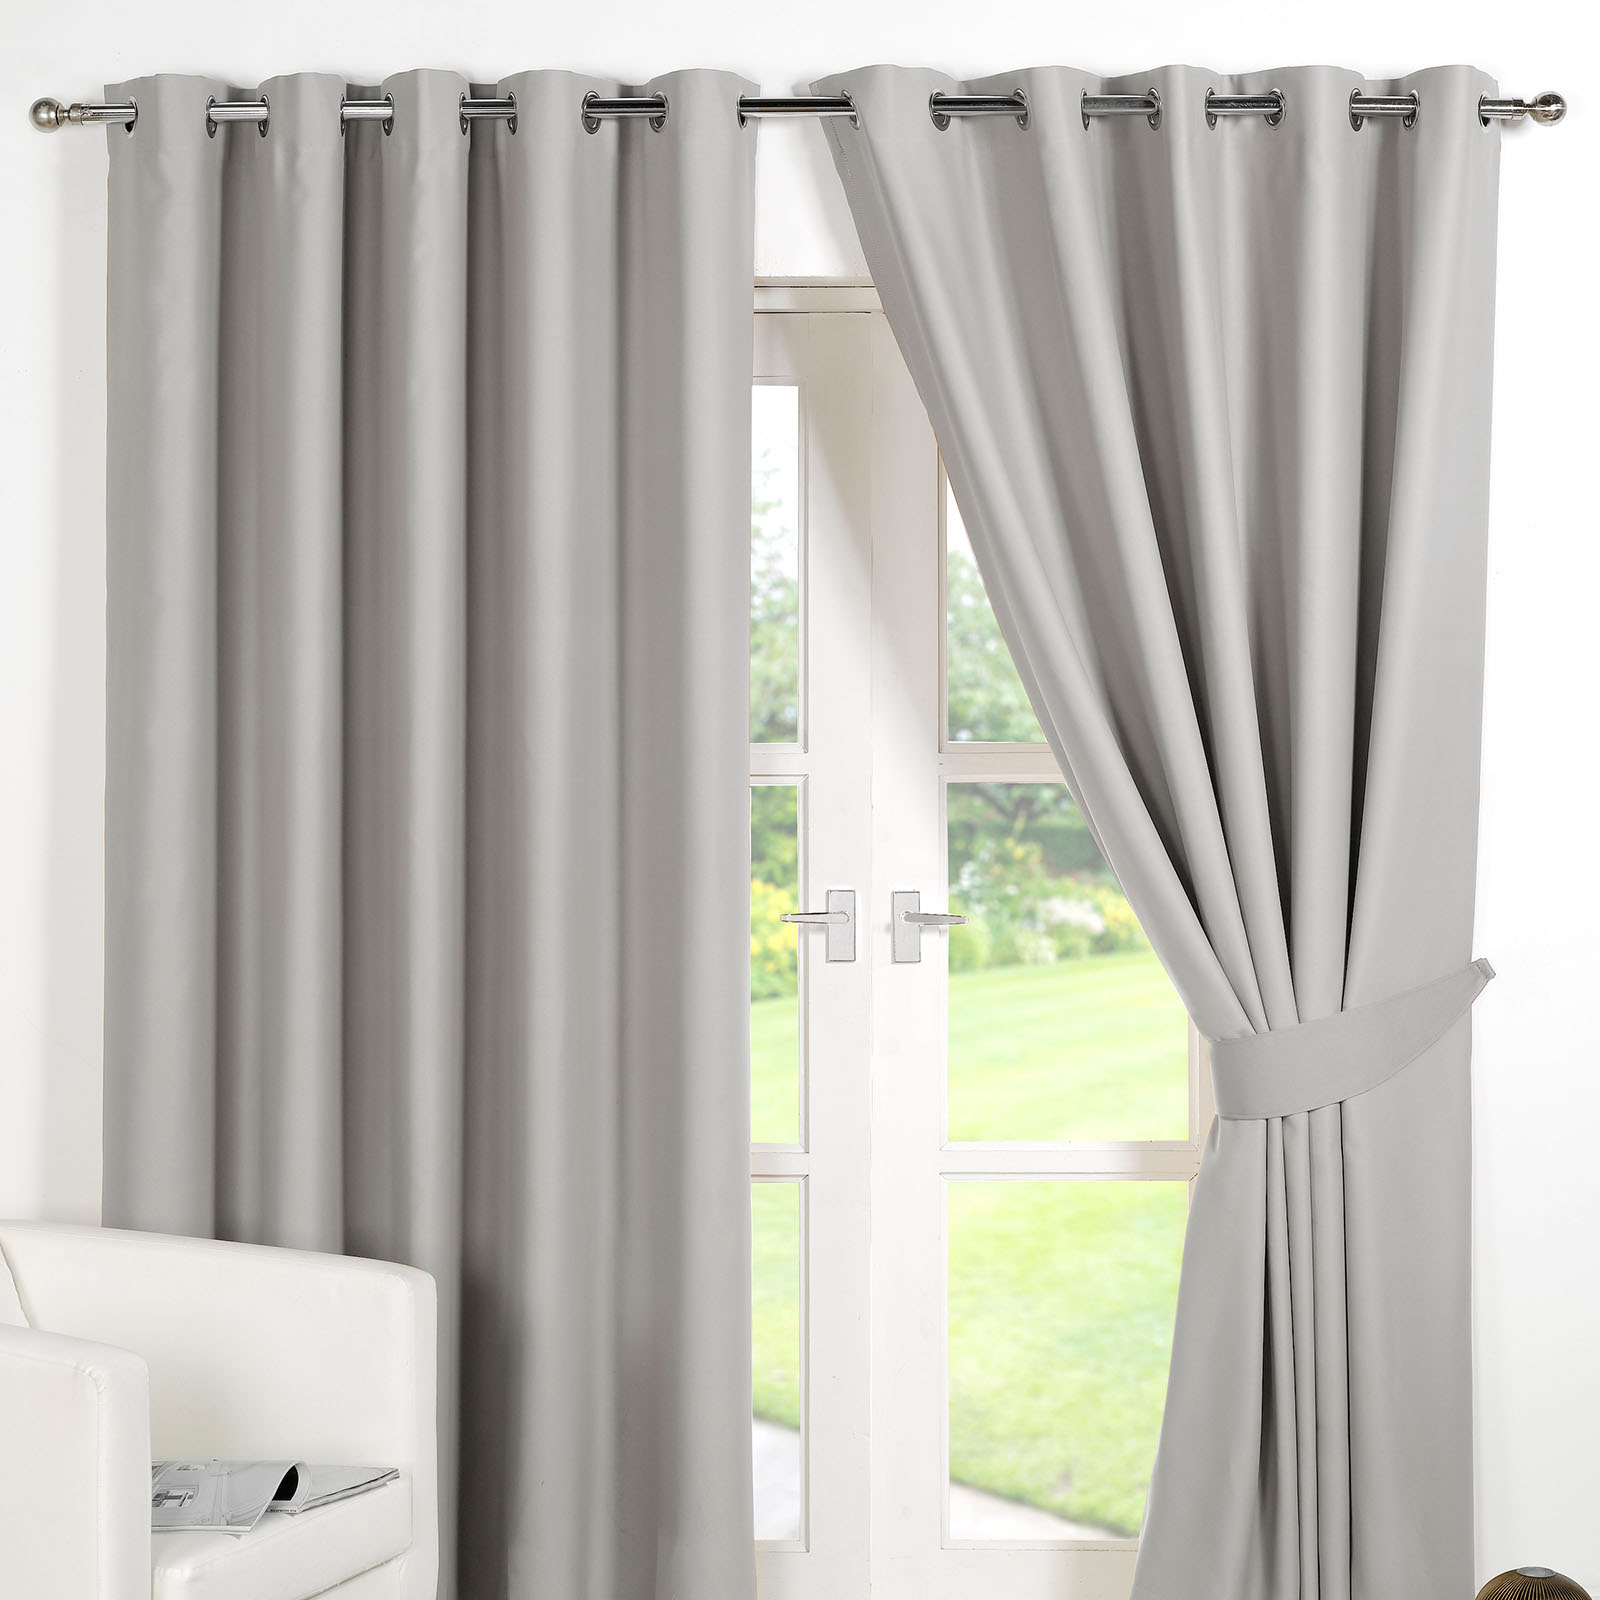 Ready Made Thermal Curtains Details About Ring Top Fully Lined Pair Eyelet Ready Made Curtains Luxury Thermal Blackout